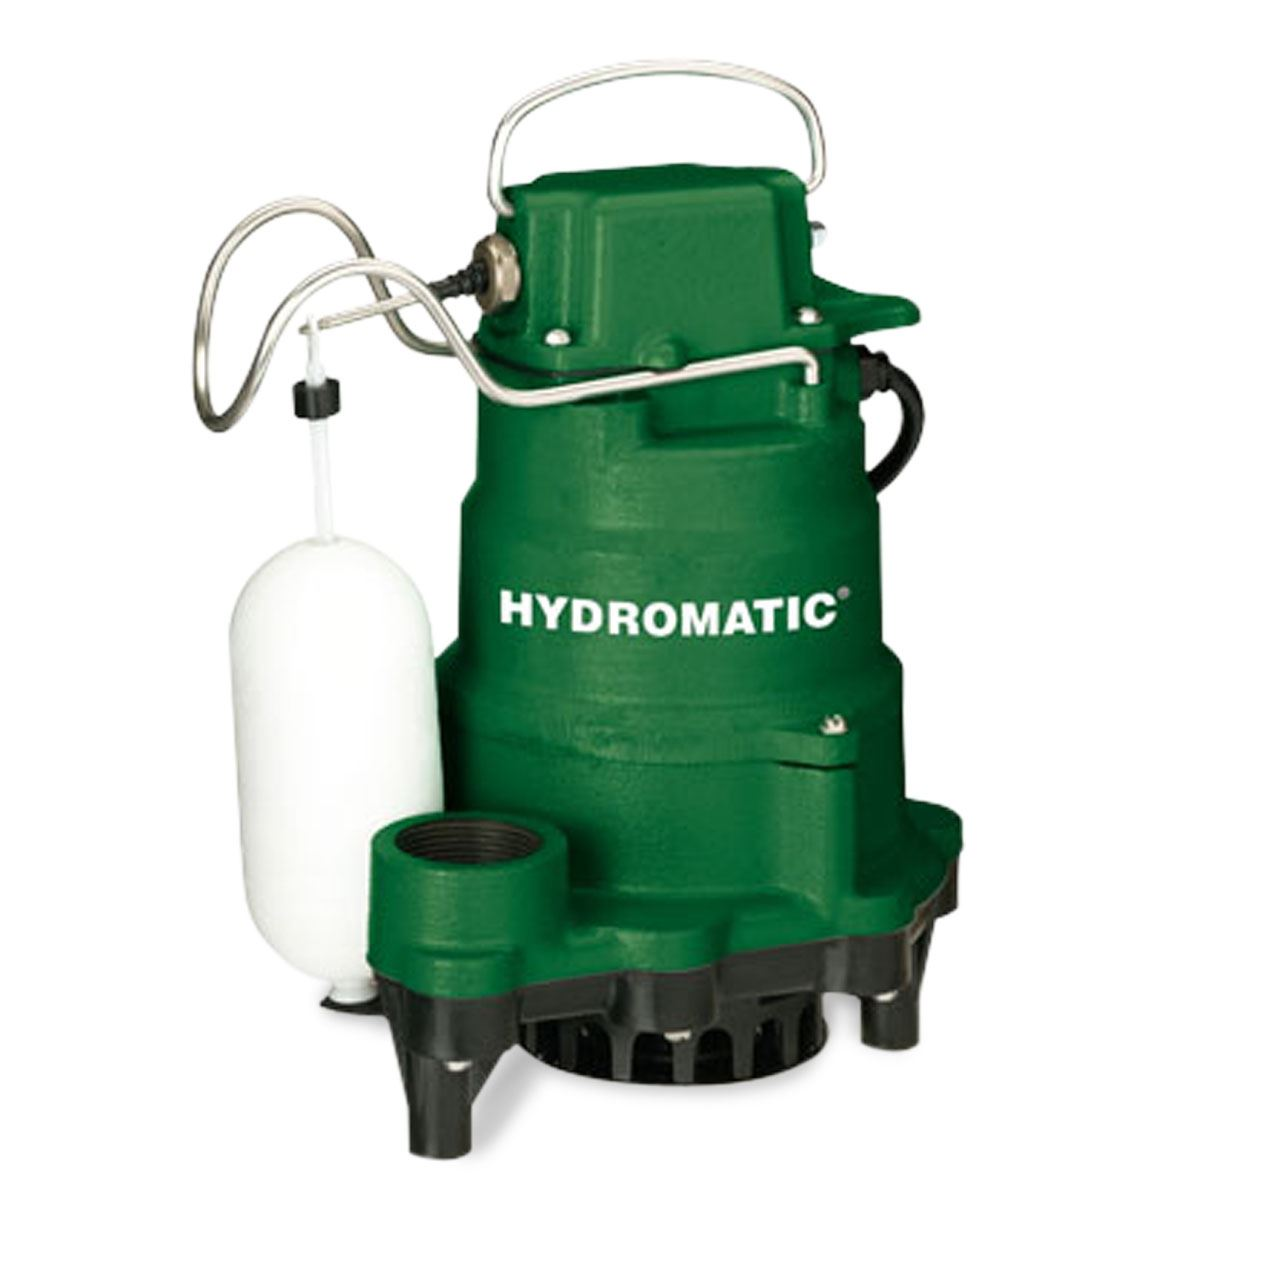 Hydromatic HP33 Automatic Submersible Sump Pump 0.33 HP 115V 1PH 10' Cord Hydromatic HP33, Hydromatic HP50, Hydromatic W-A1, Hydromatic D-A1, Hydromatic V-A1, W-A1, D-A1, V-A1, SW33, SW33A1, SW33M1, SW33M2, SW33A2,Effluent pump, Hydromatic Pump, Hydromatic Effluent pump, septic pump, Hydromatic sewage pump, sump pump, sewage pump,